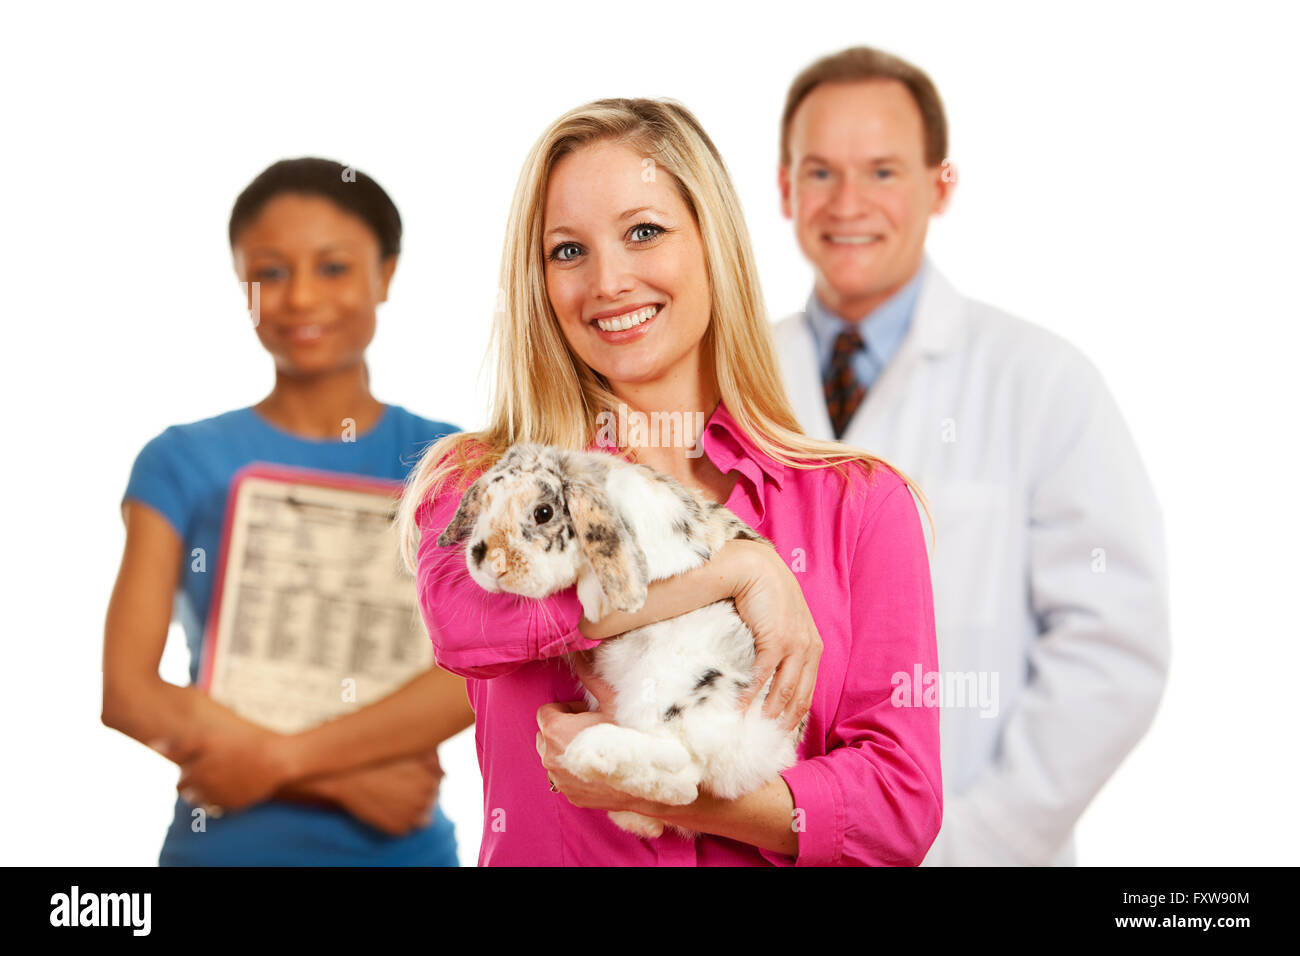 Series with a Cacucasian Veterinarian, and mixed-ethnicity group of assistants and customers.  Holding rabbit, cat - Stock Image